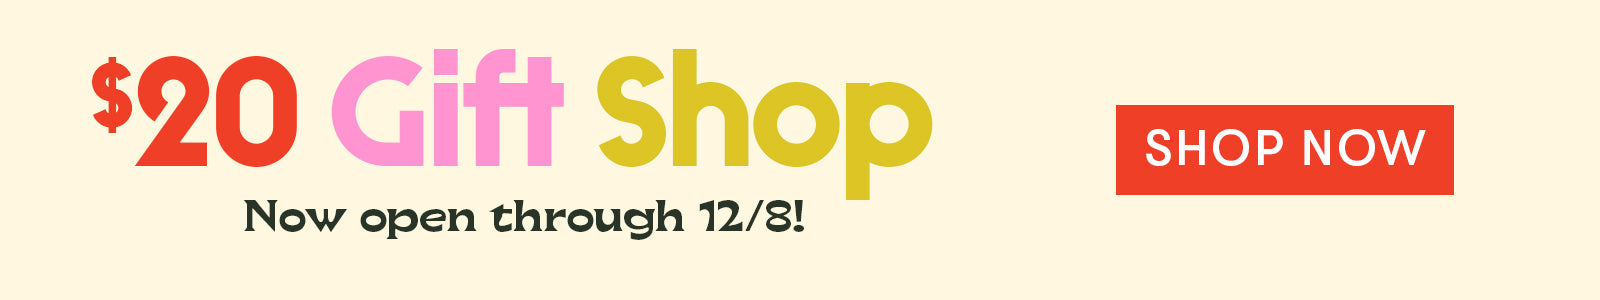 $20 Gift Shop - Now open through 12/8! Shop Now